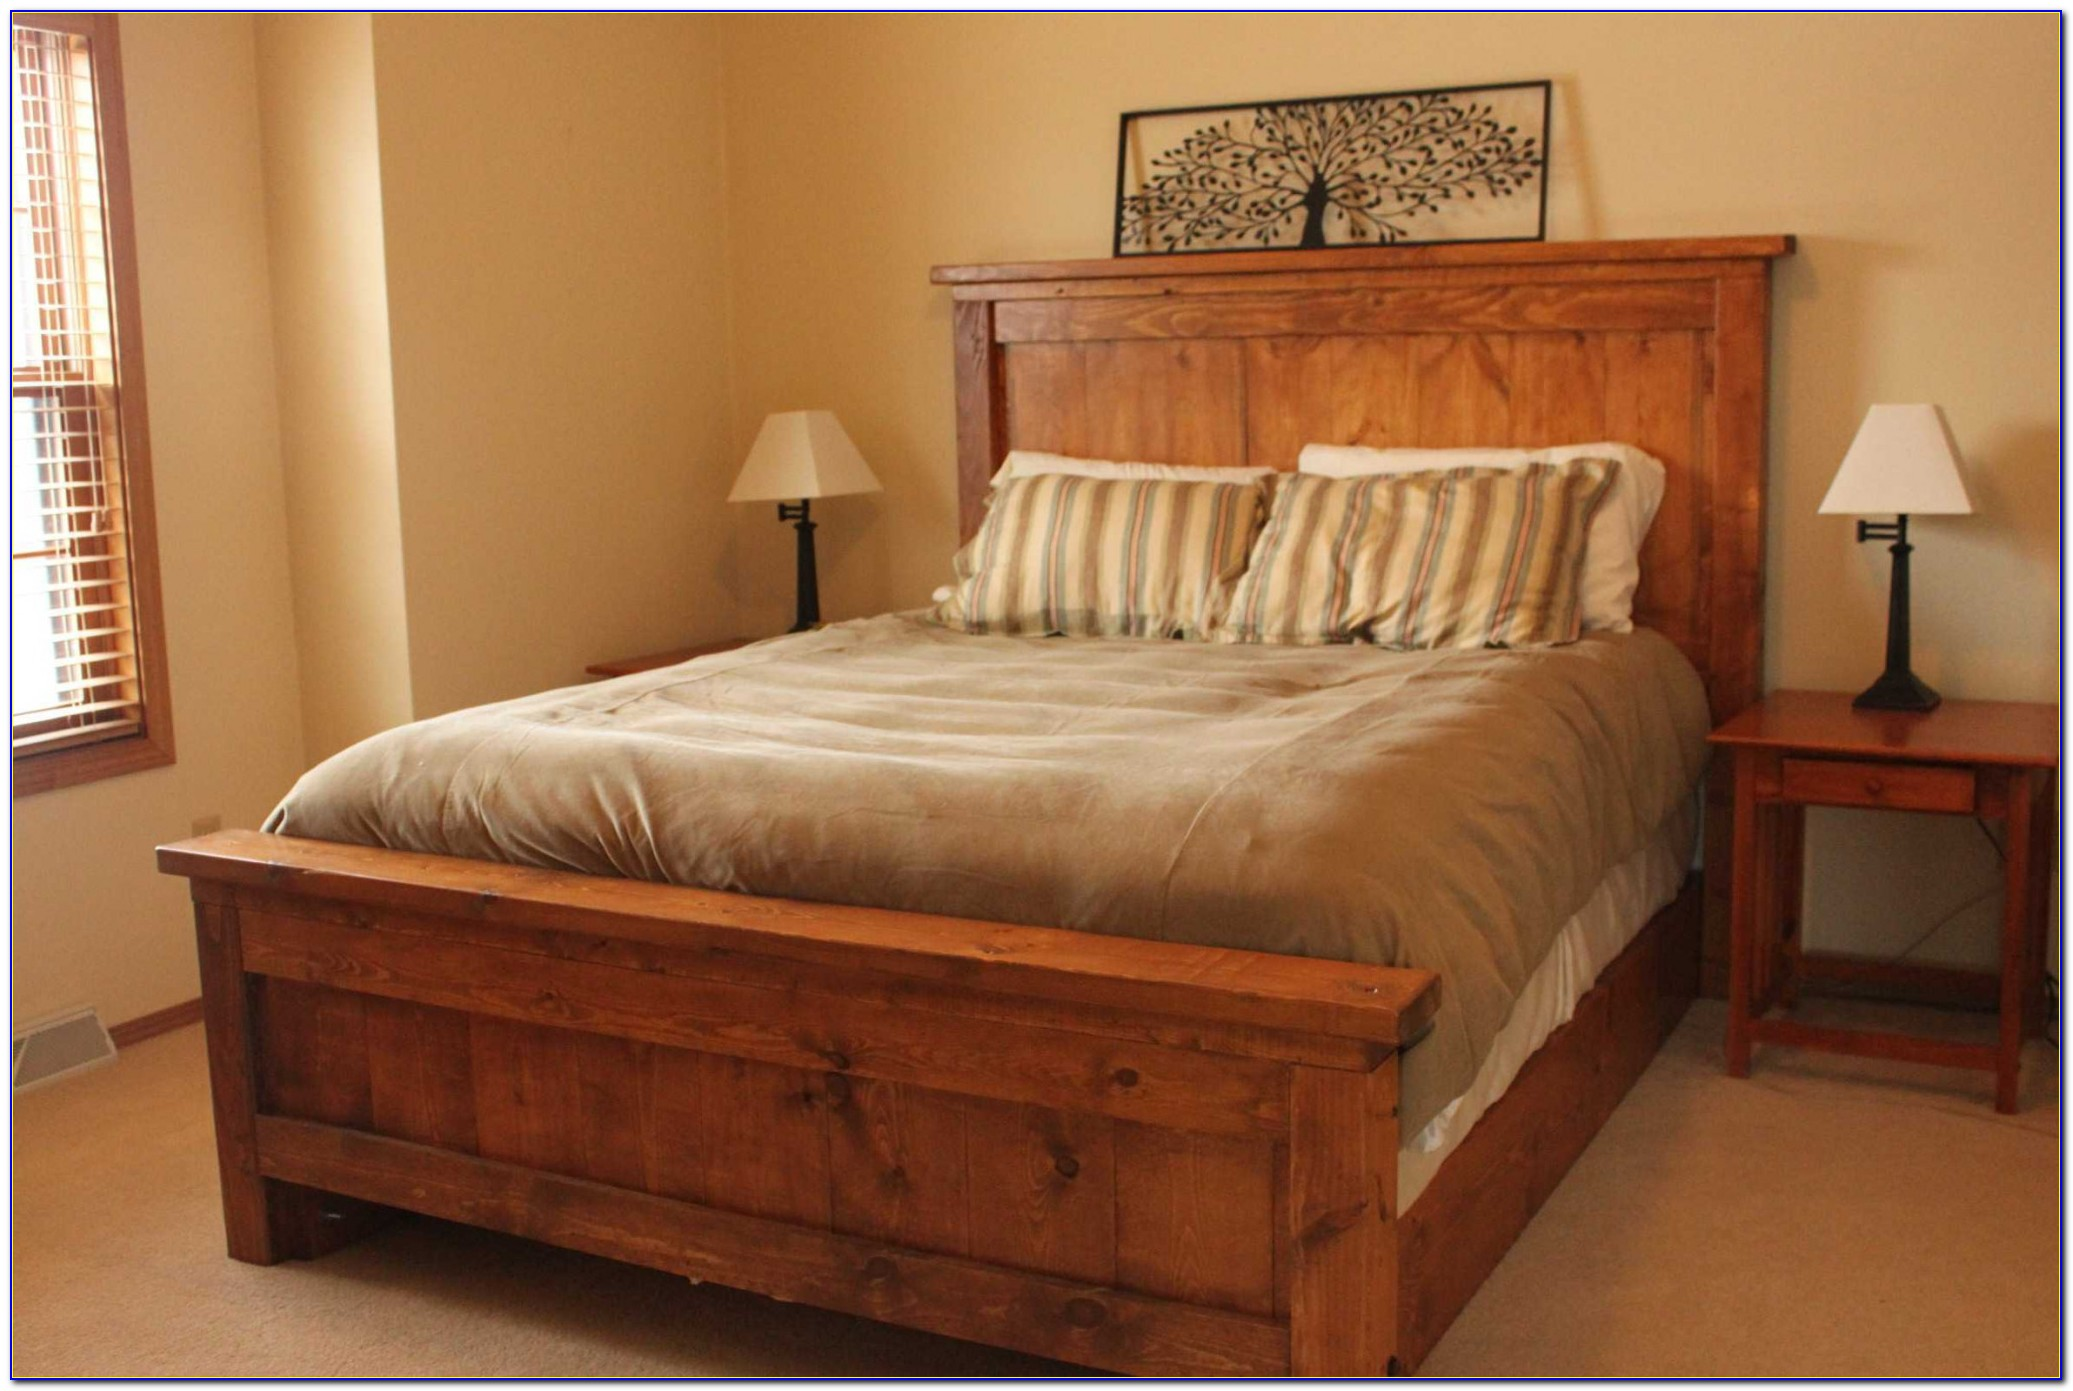 Queen Bed Frame With Headboard And Footboard Pictures Headboards